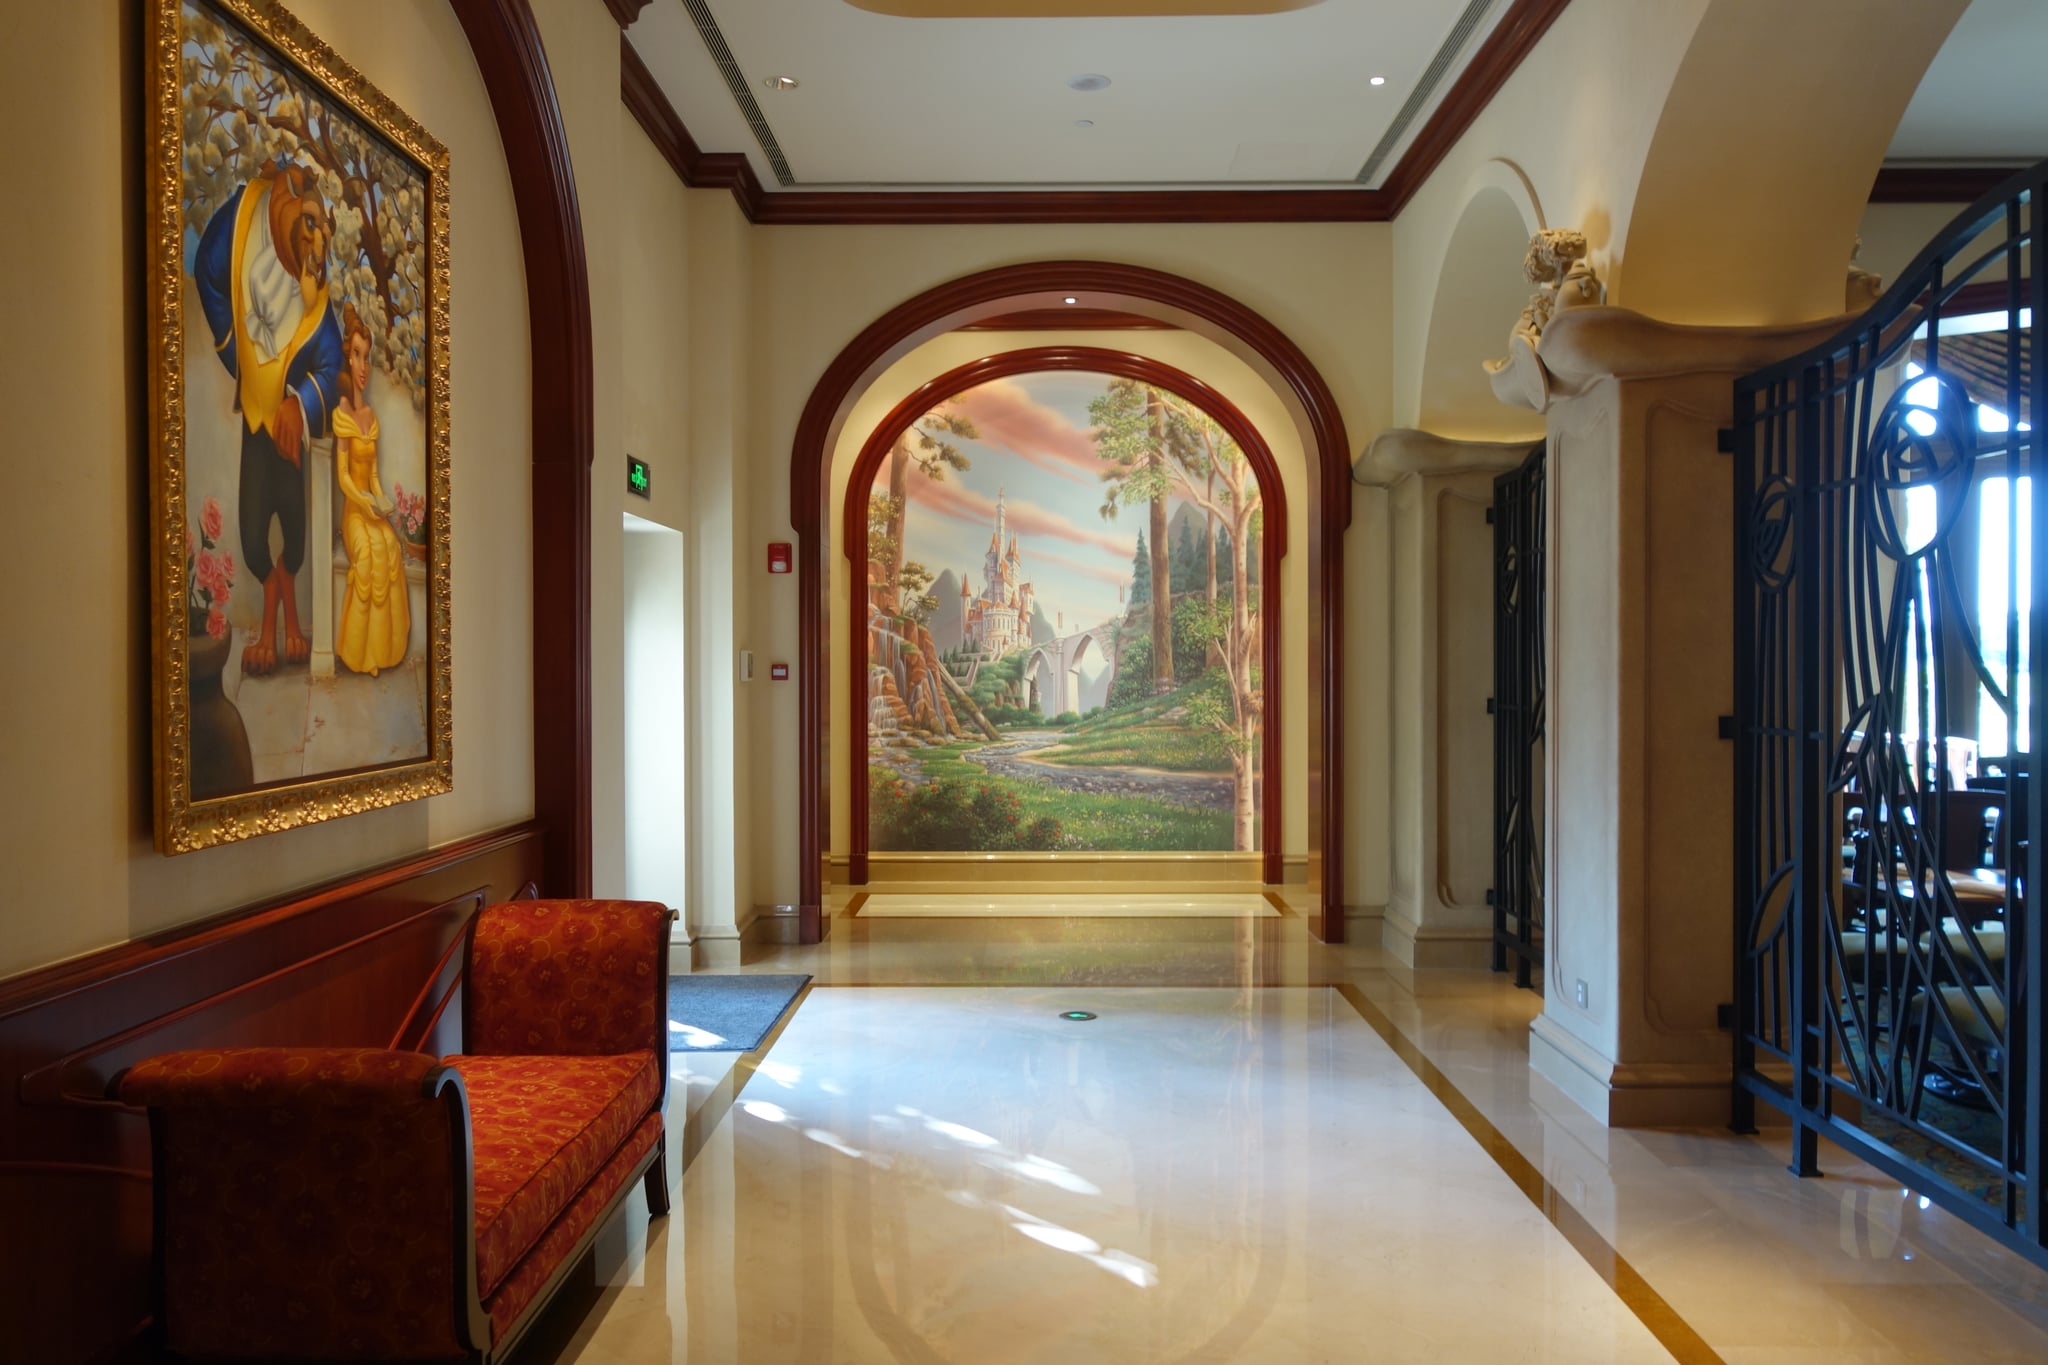 If you can afford the Shanghai Disneyland Hotel, book it.